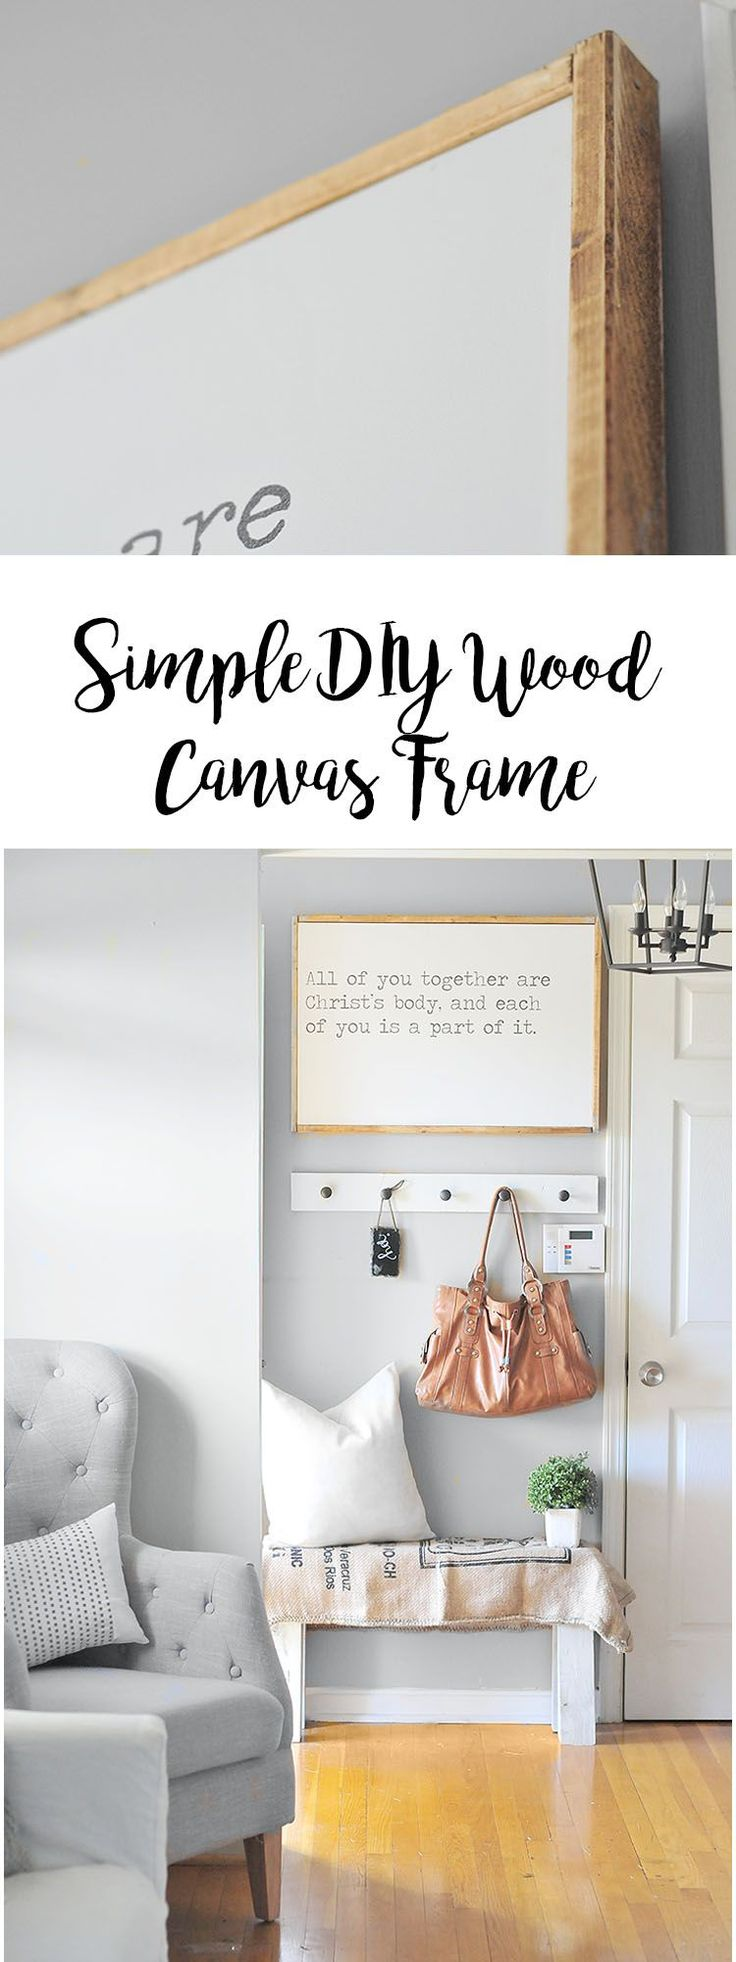 Simple and rustic are in, and this wood frame is both simple and rustic. No power tools required, and you get a gorgeous piece of wall art! #wallart #canvas #frame #simple #rustic #farmhouse #decor #homedecor #diy #howto #tutorial